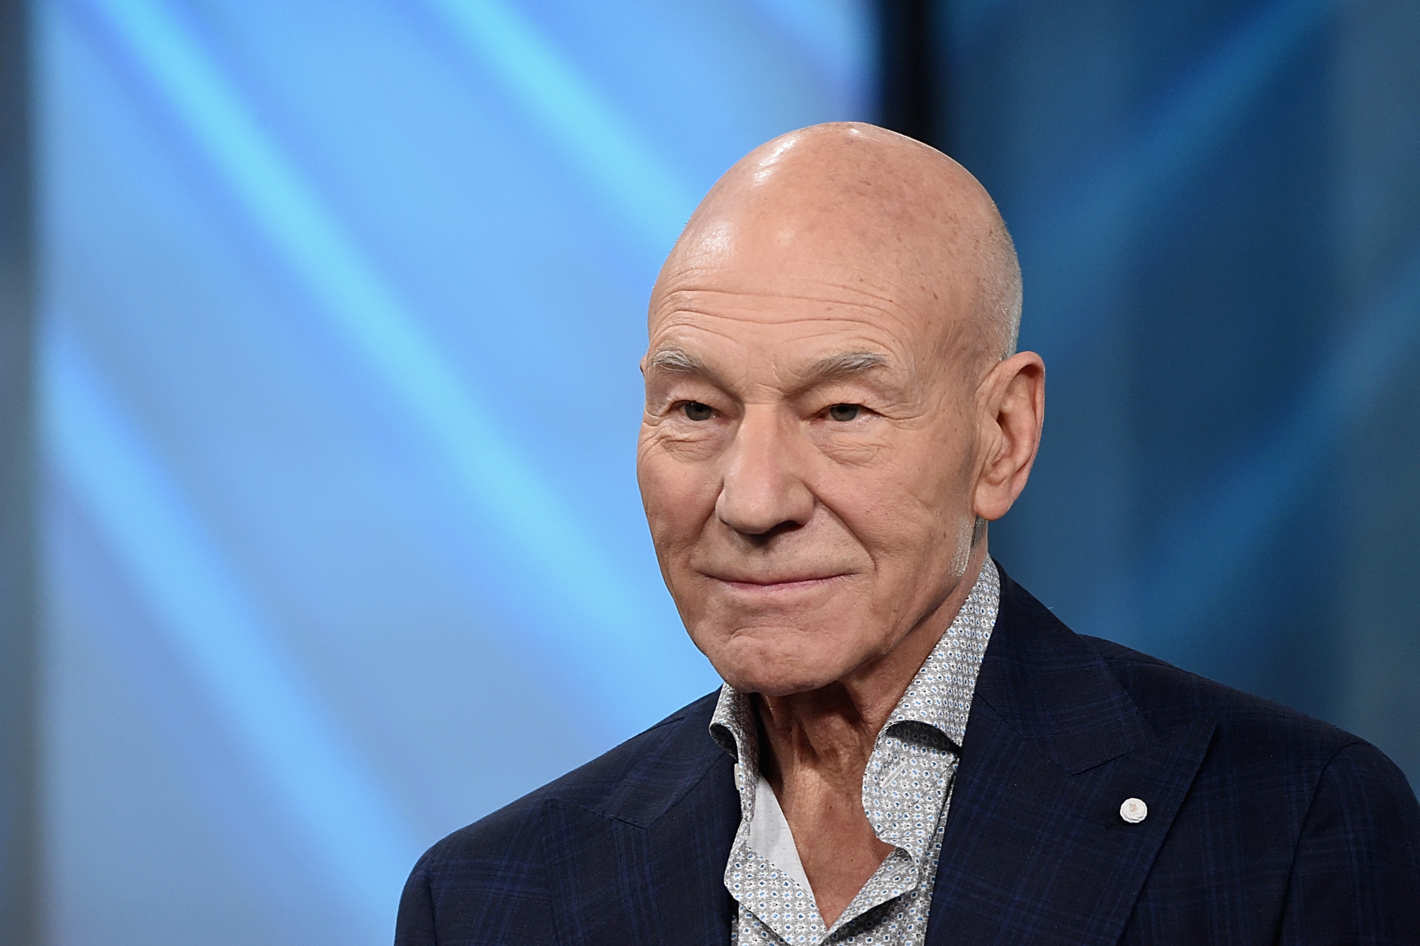 Patrick Stewart Uses Medicinal Marijuana to Treat His Arthritis, and He Ain't Ashamed